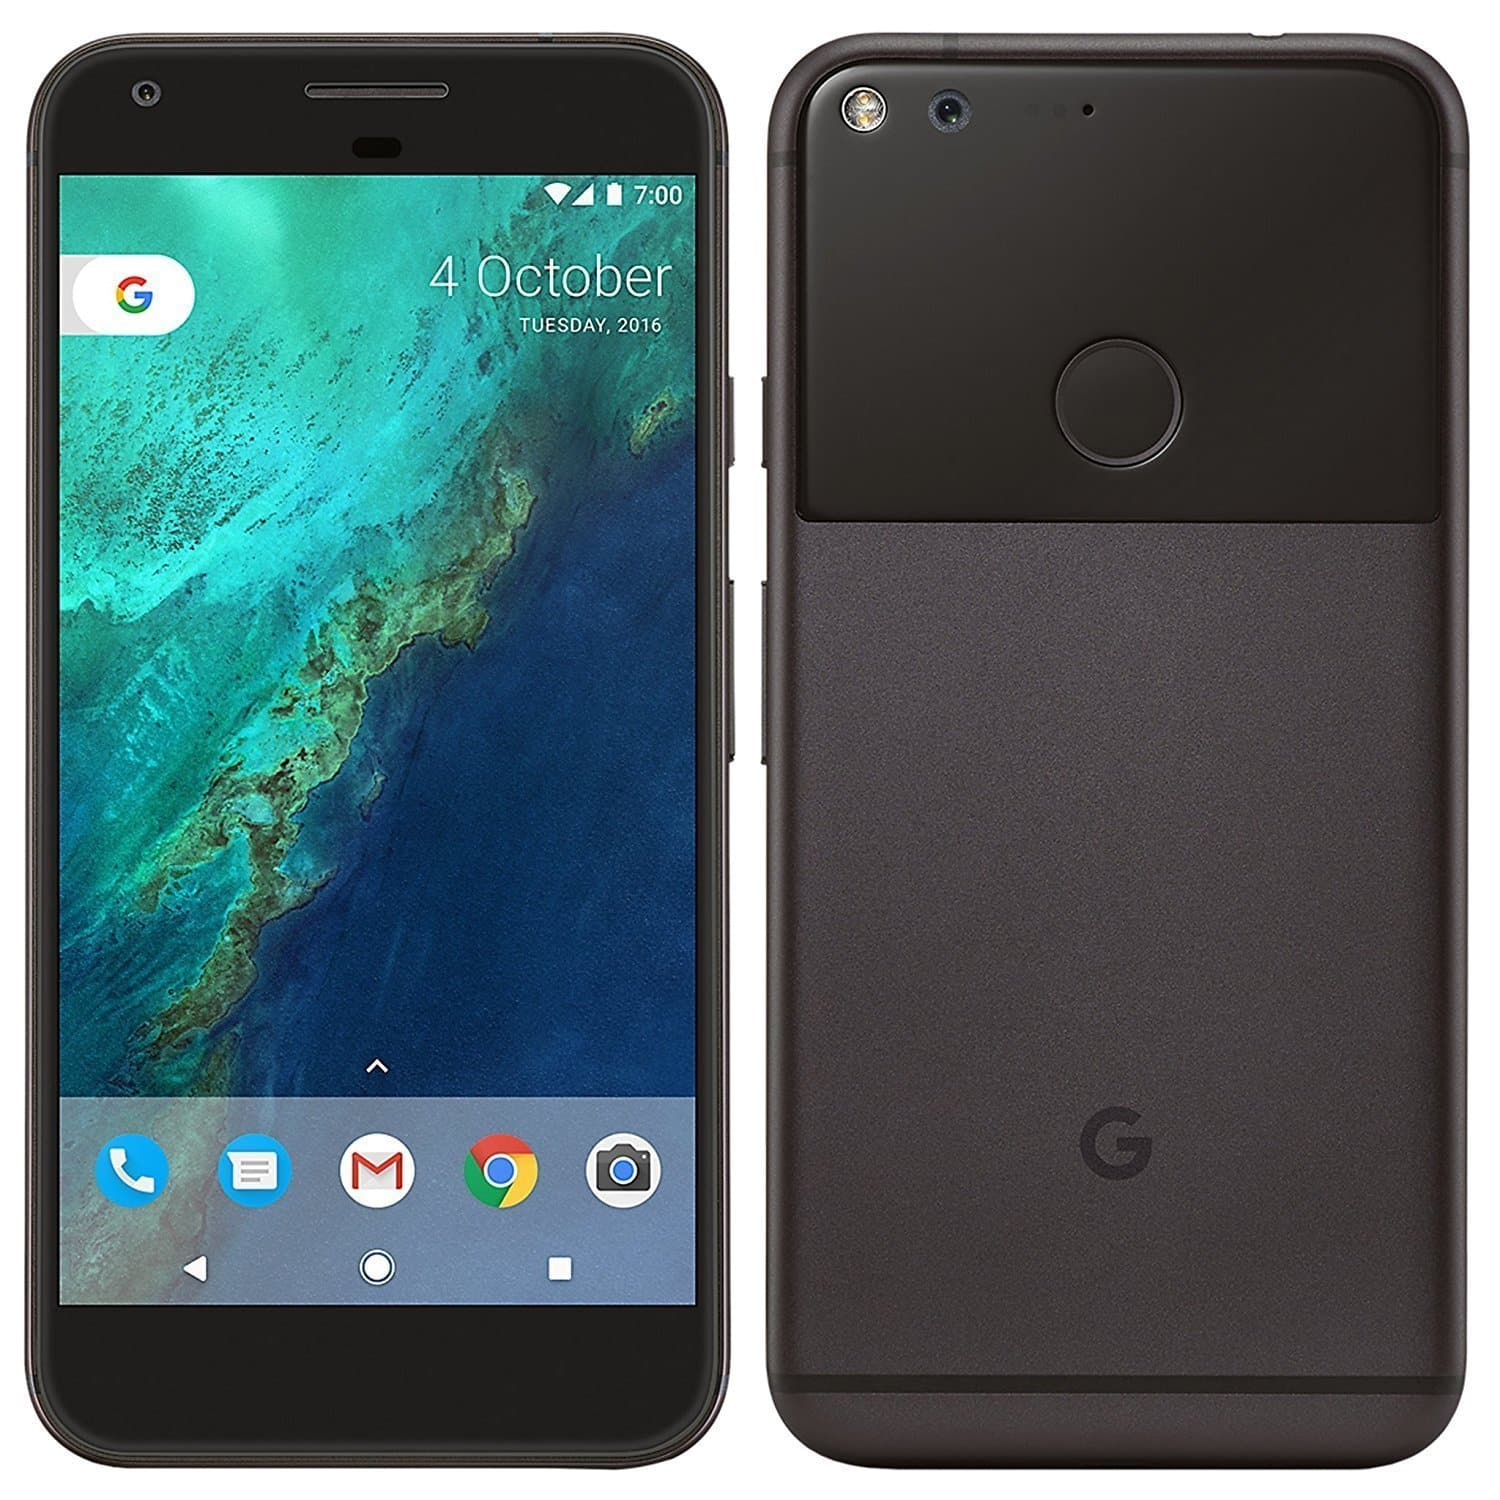 Up To 43% Google Off Pixel G-2PW4100 32GB Smartphone $229+Free Shipping@Amazon